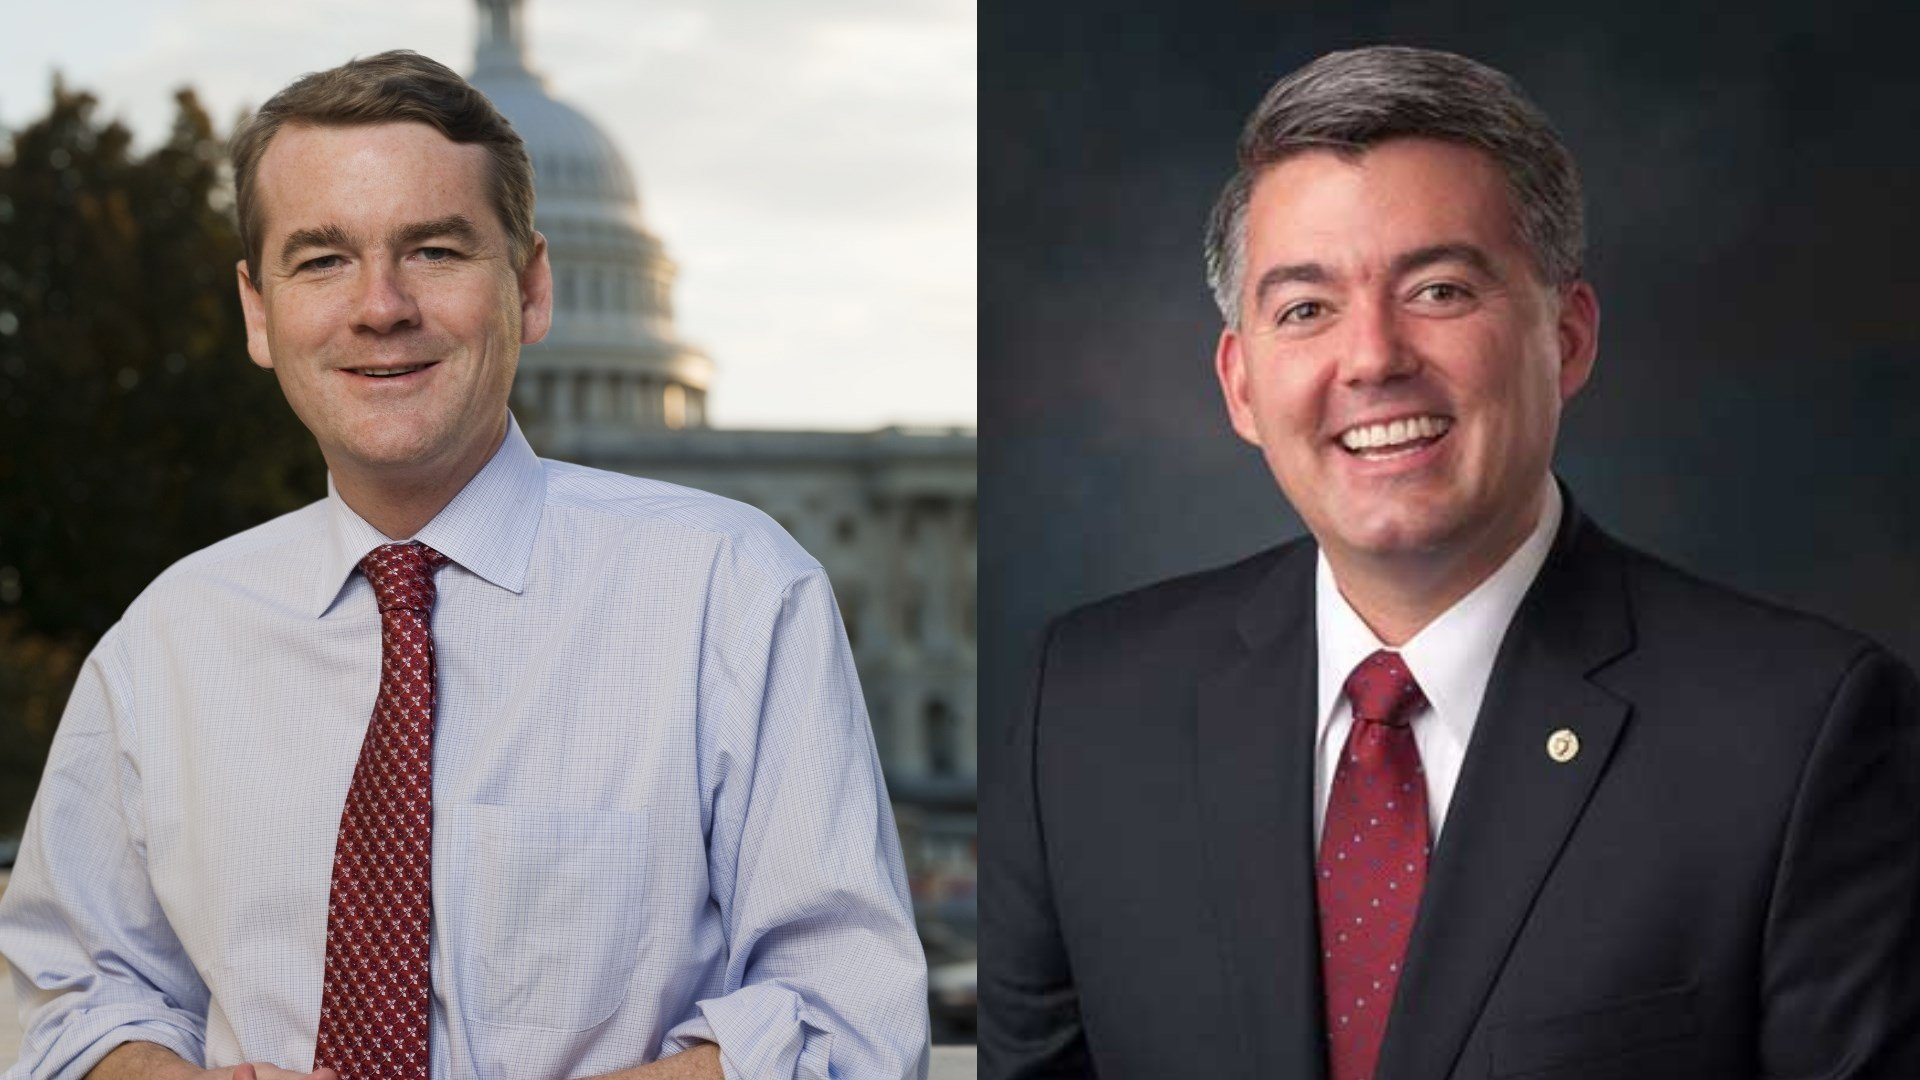 U.S. Senators Michael Bennet and Cory Gardner